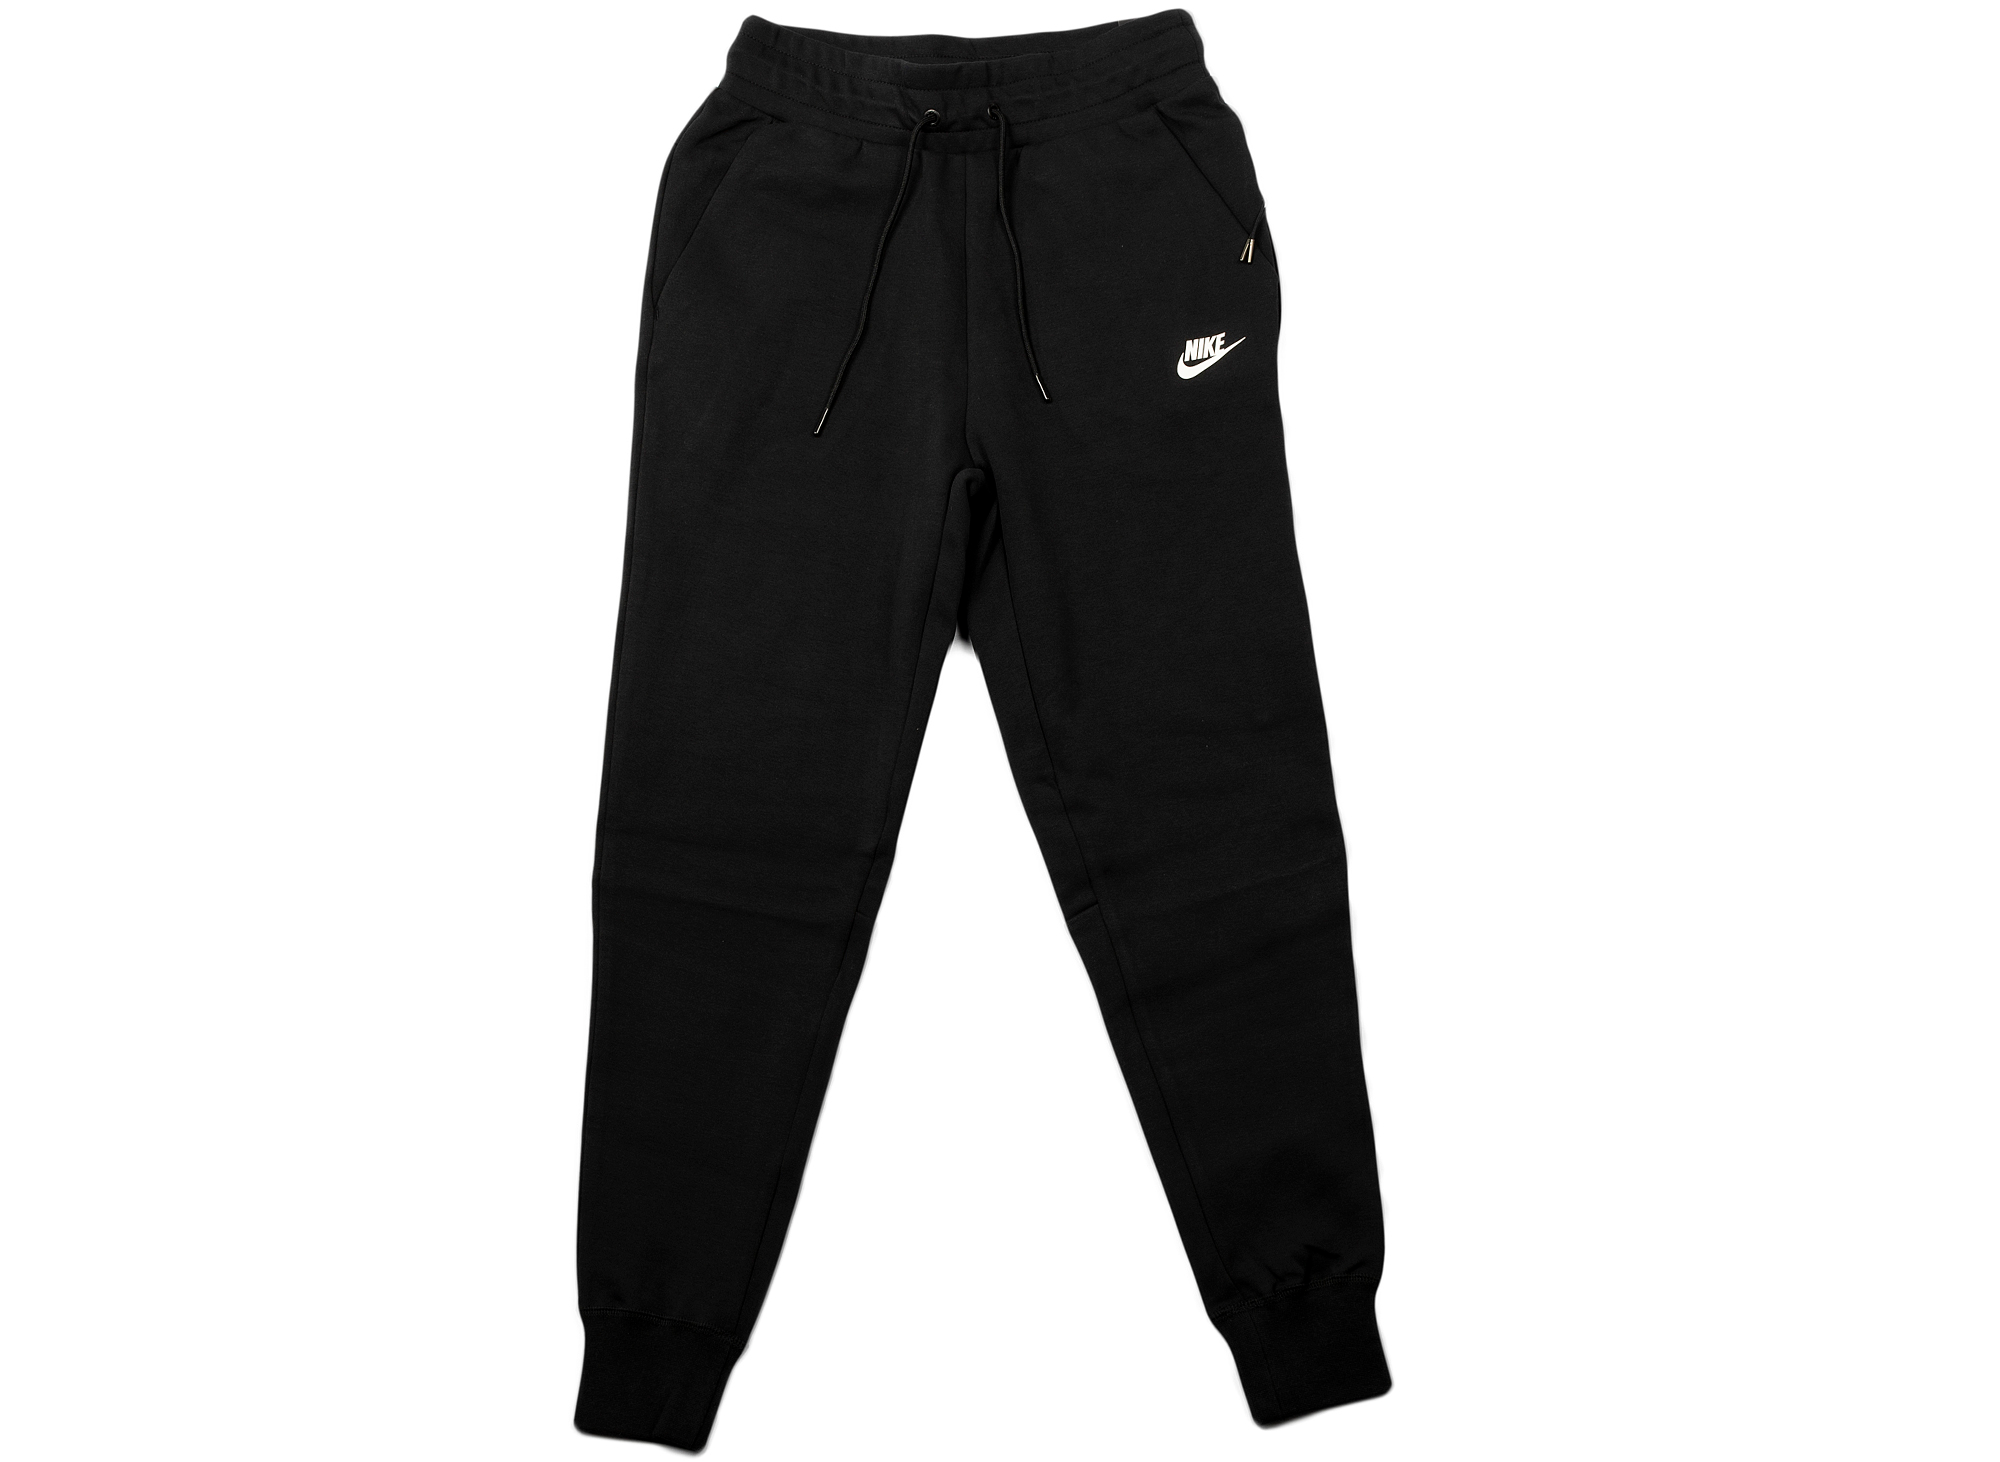 Women's Nike Sportswear Tech Fleece Joggers